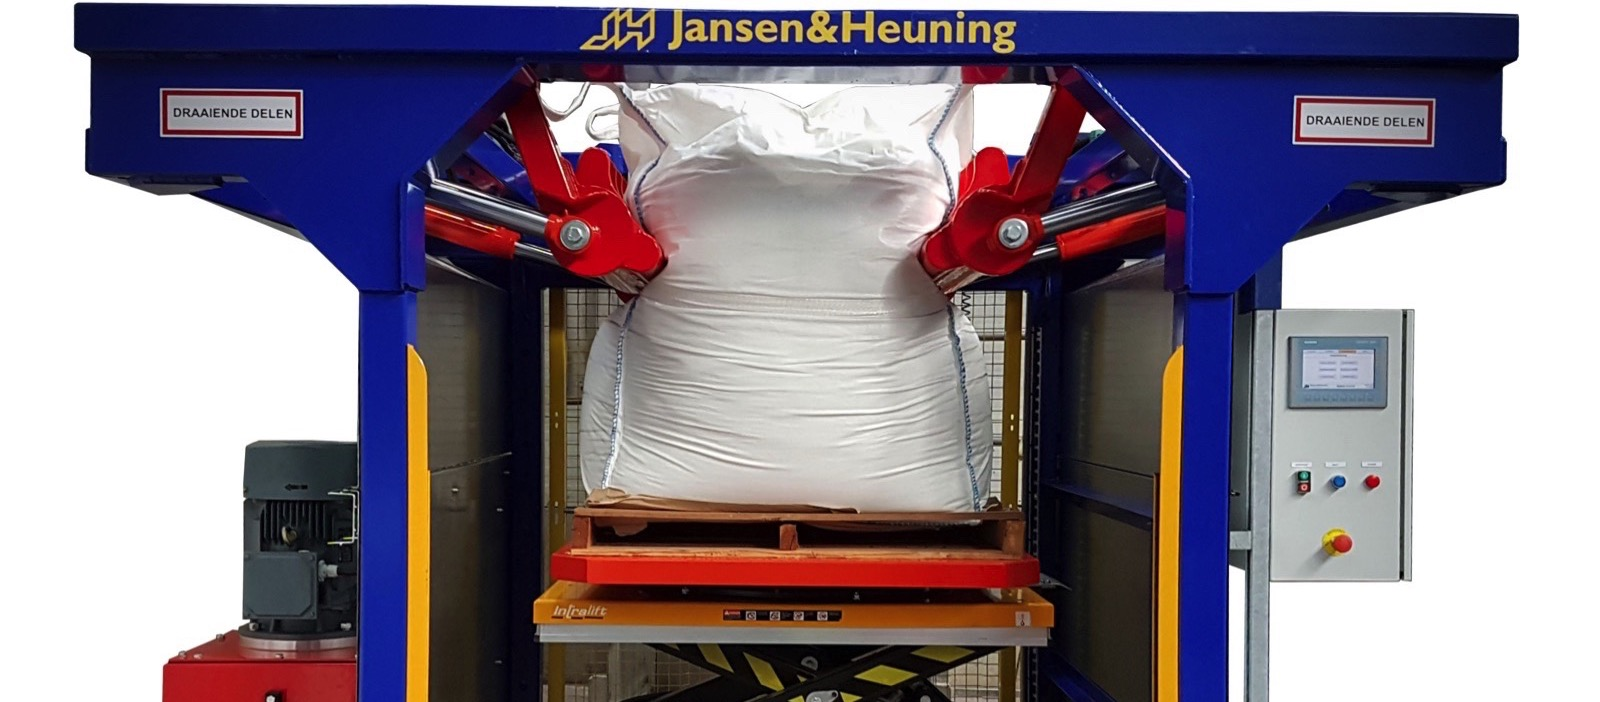 Jansen&Heuning: New Bigbag Crusher performs well